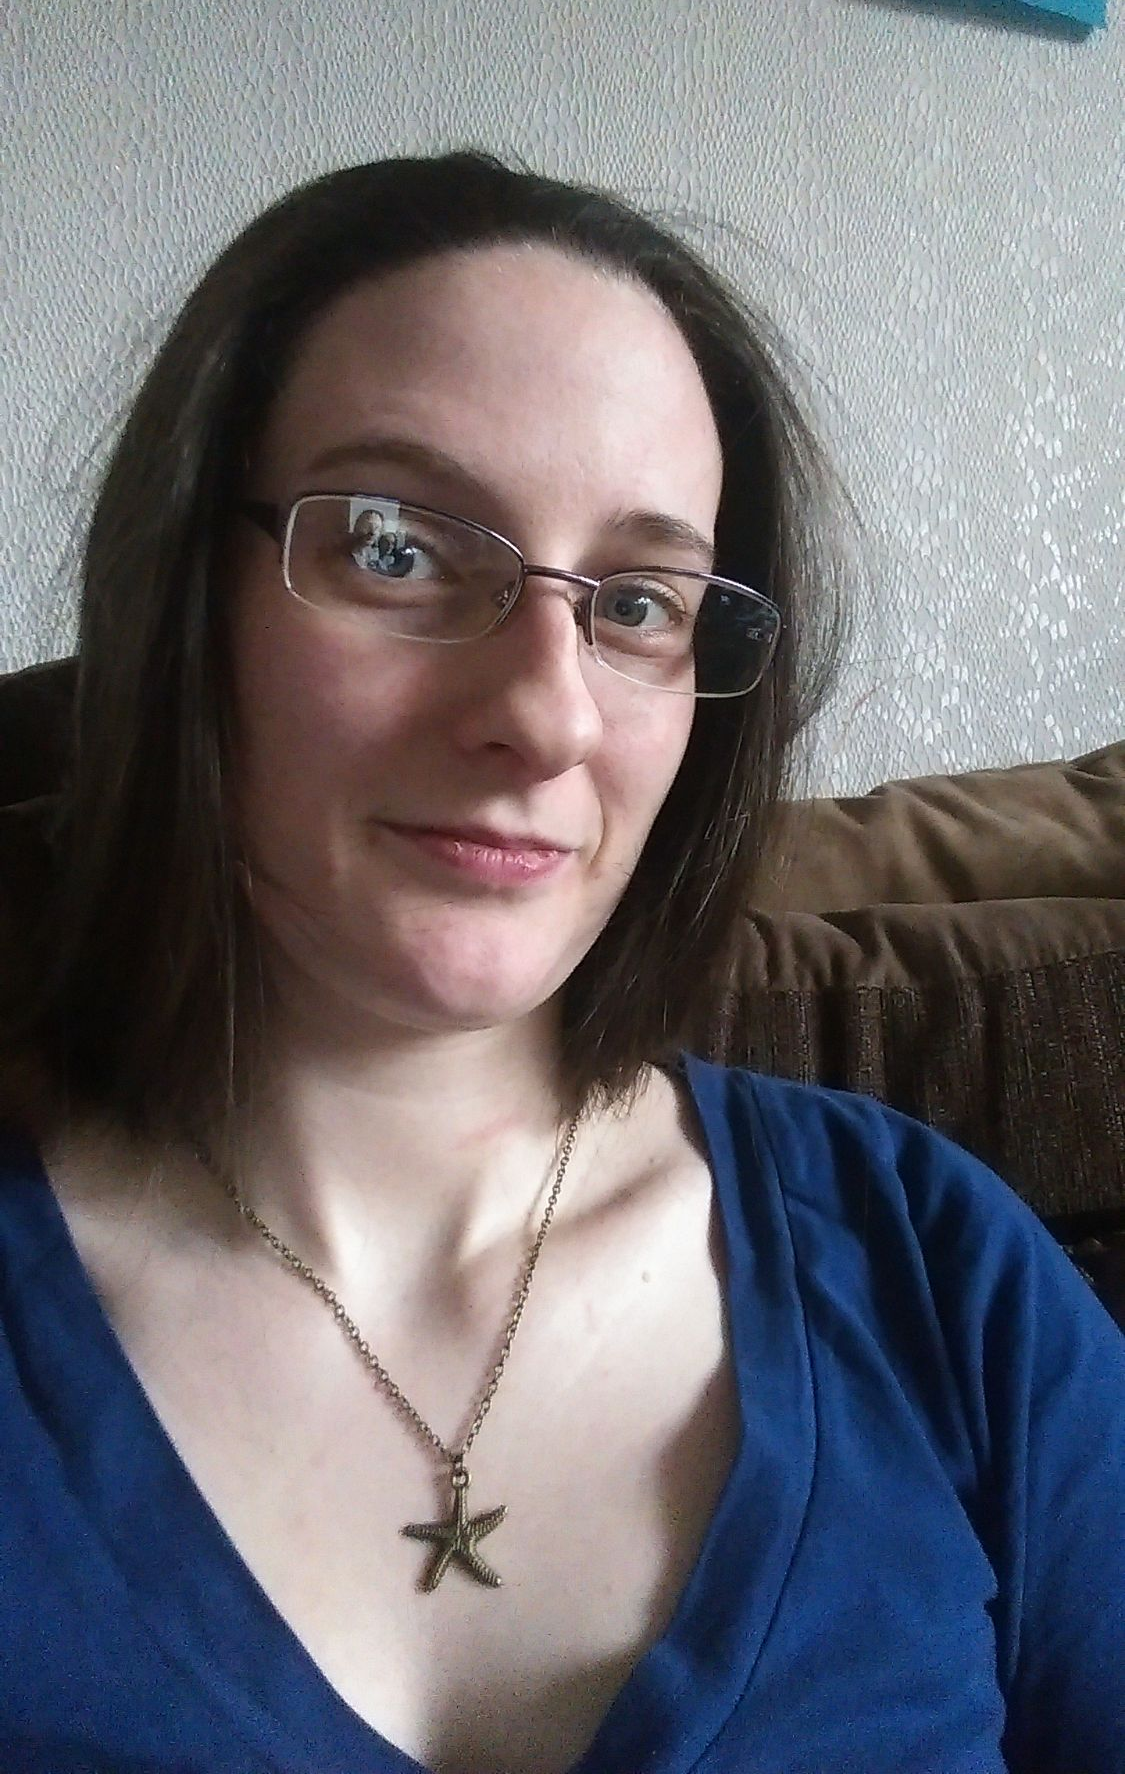 An image of Caz sitting on a sofa. She wears glasses. Her hair is loose and she is wearing a blue top and a necklace with a starfish on it.